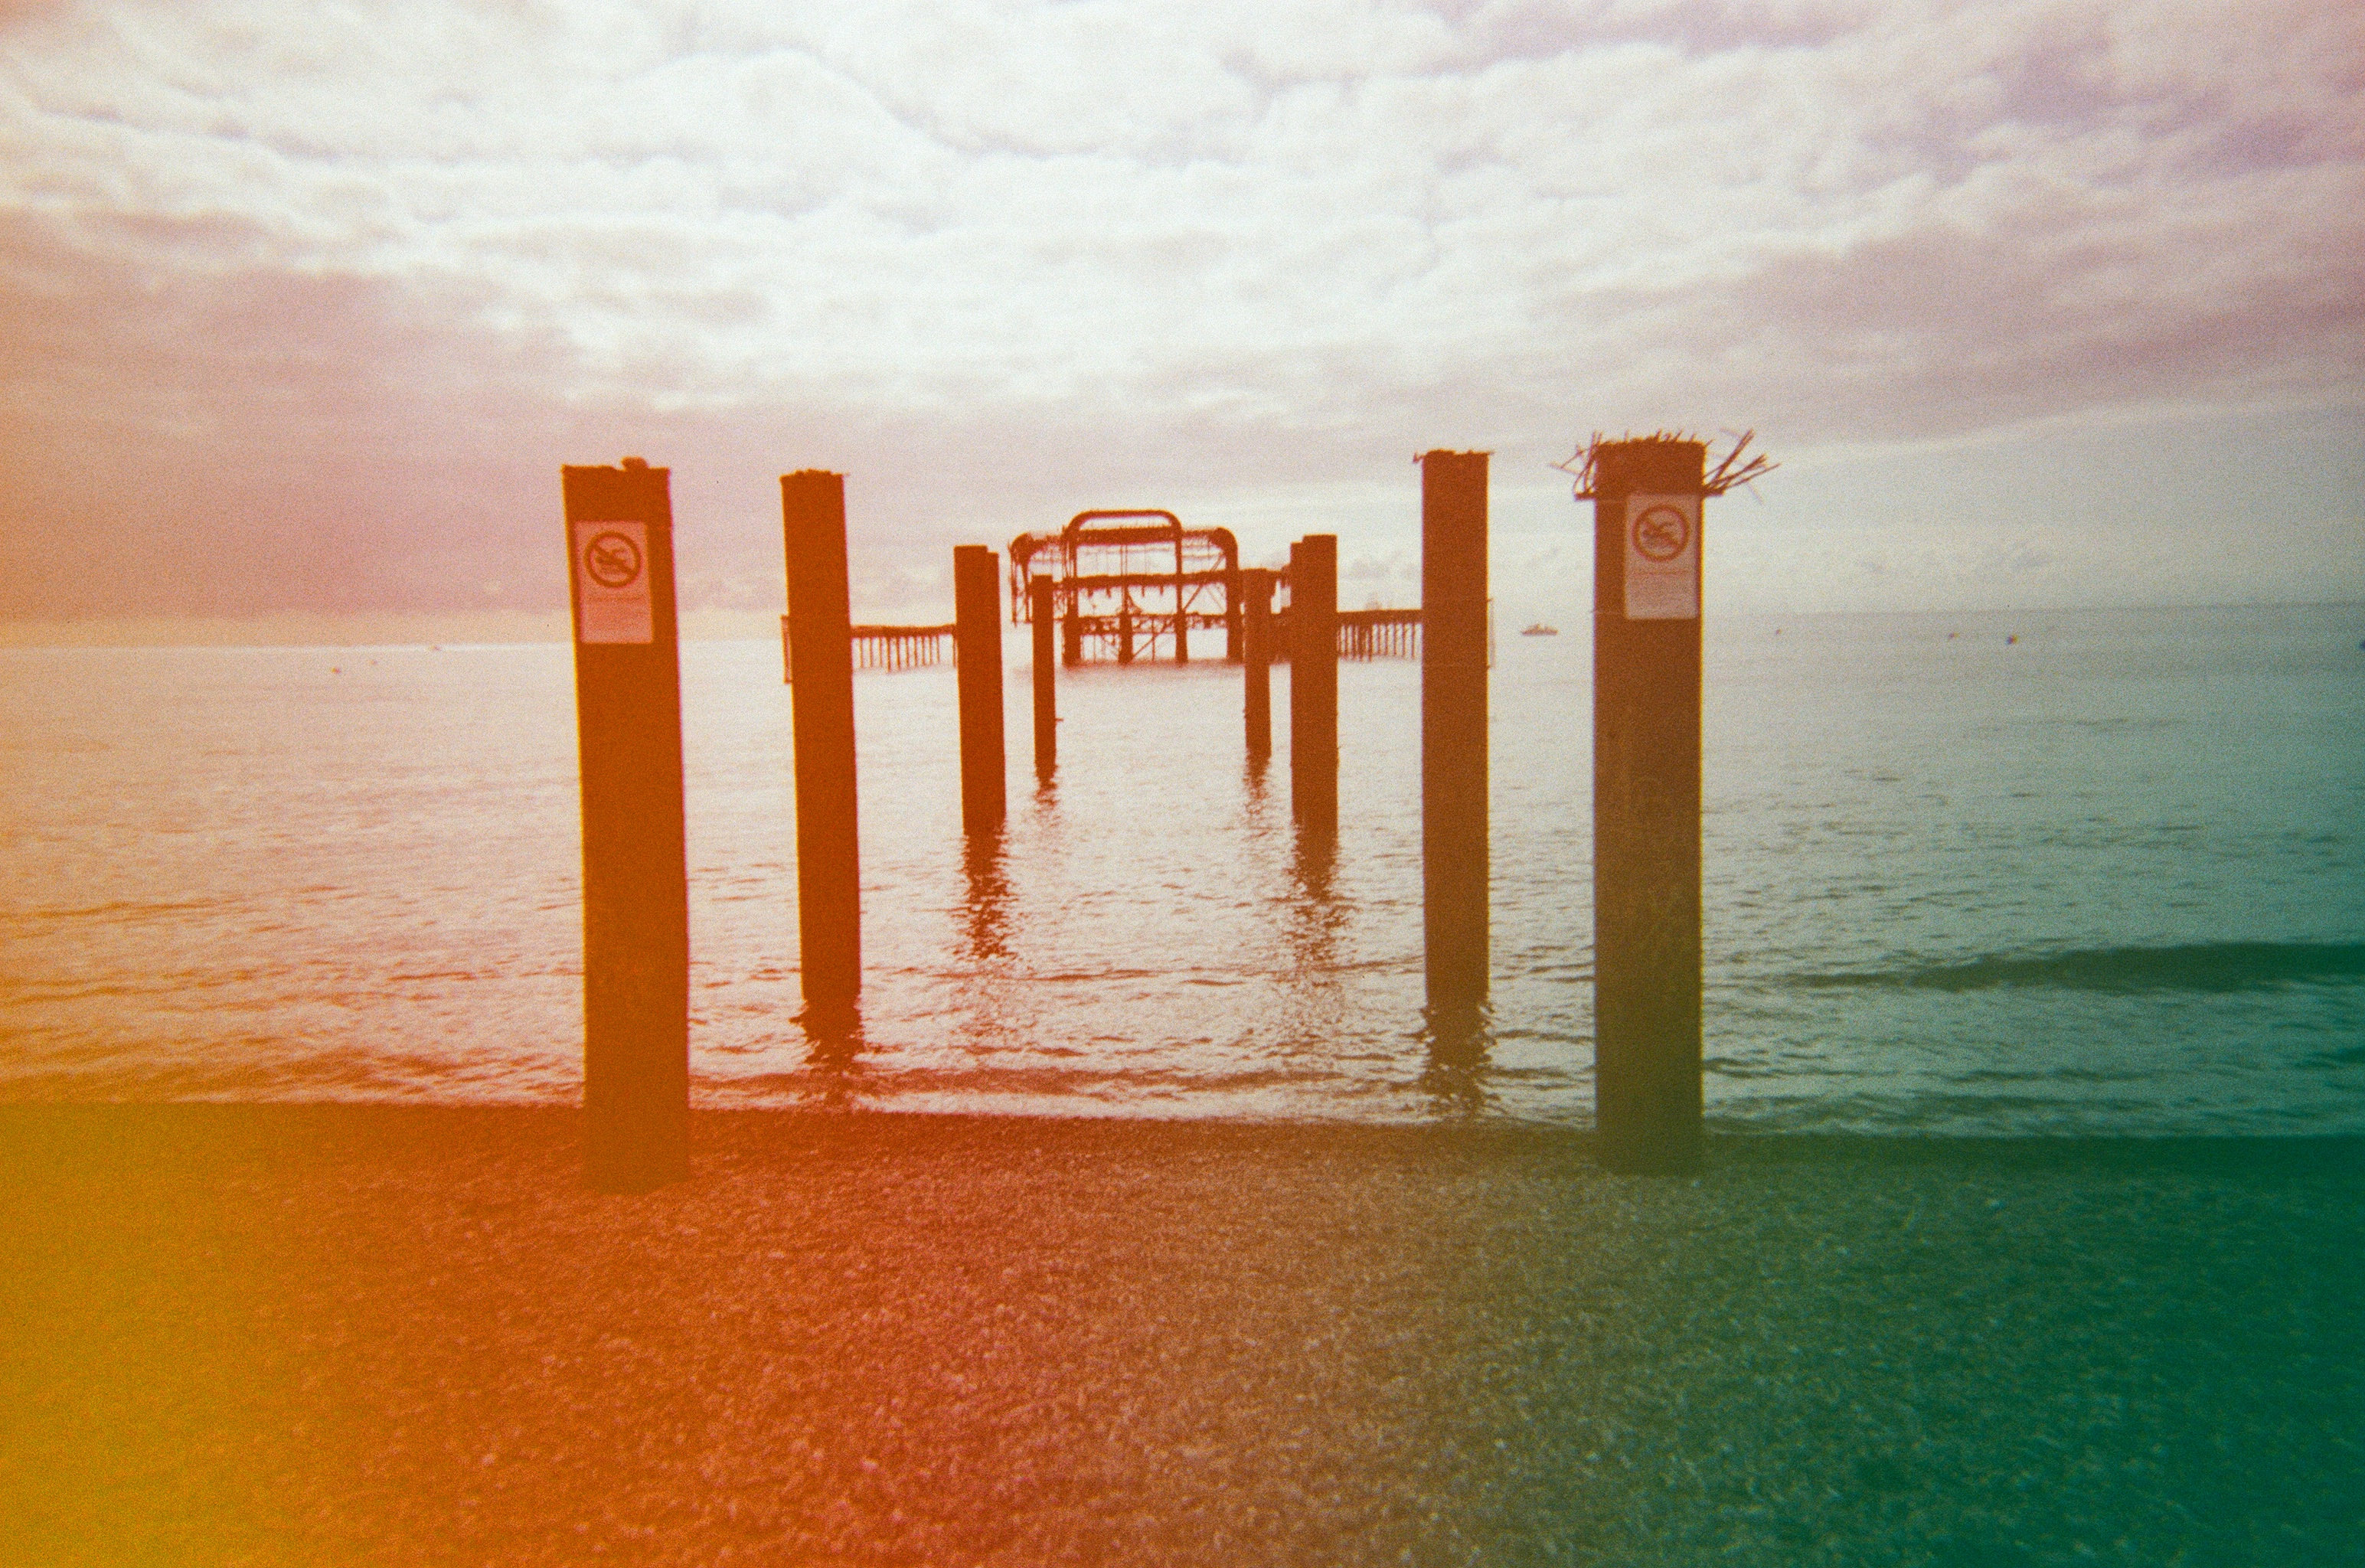 dubblefilm jelly brighton west pier multicolour